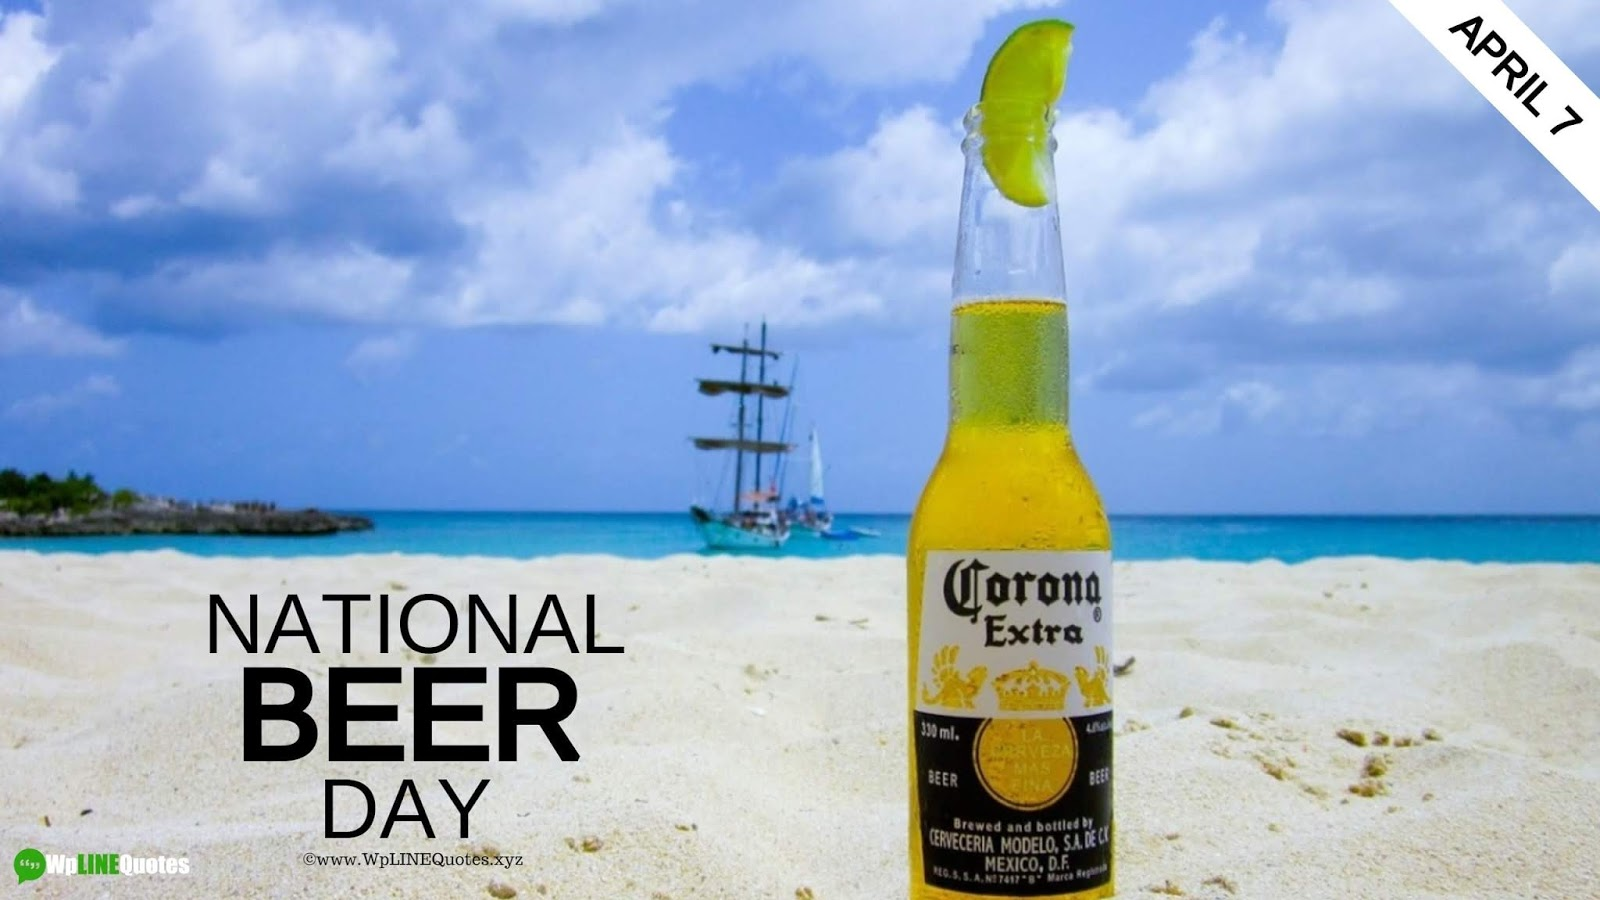 National Beer Day Quotes, Wishes, Messages, Sayings, History, Images